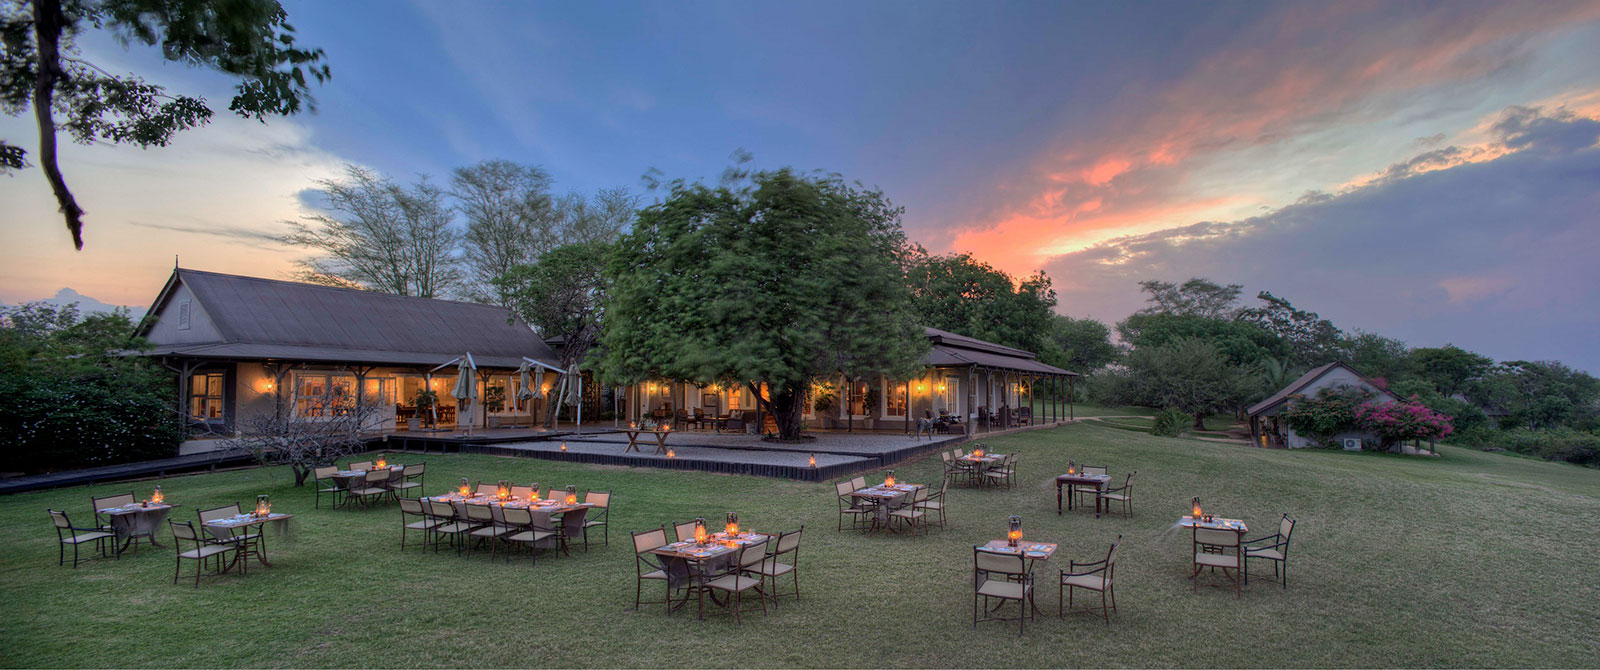 Dinner at Kirkman's Kamp - Luxury South African Safari: andBeyond Phinda and Sabi Sands